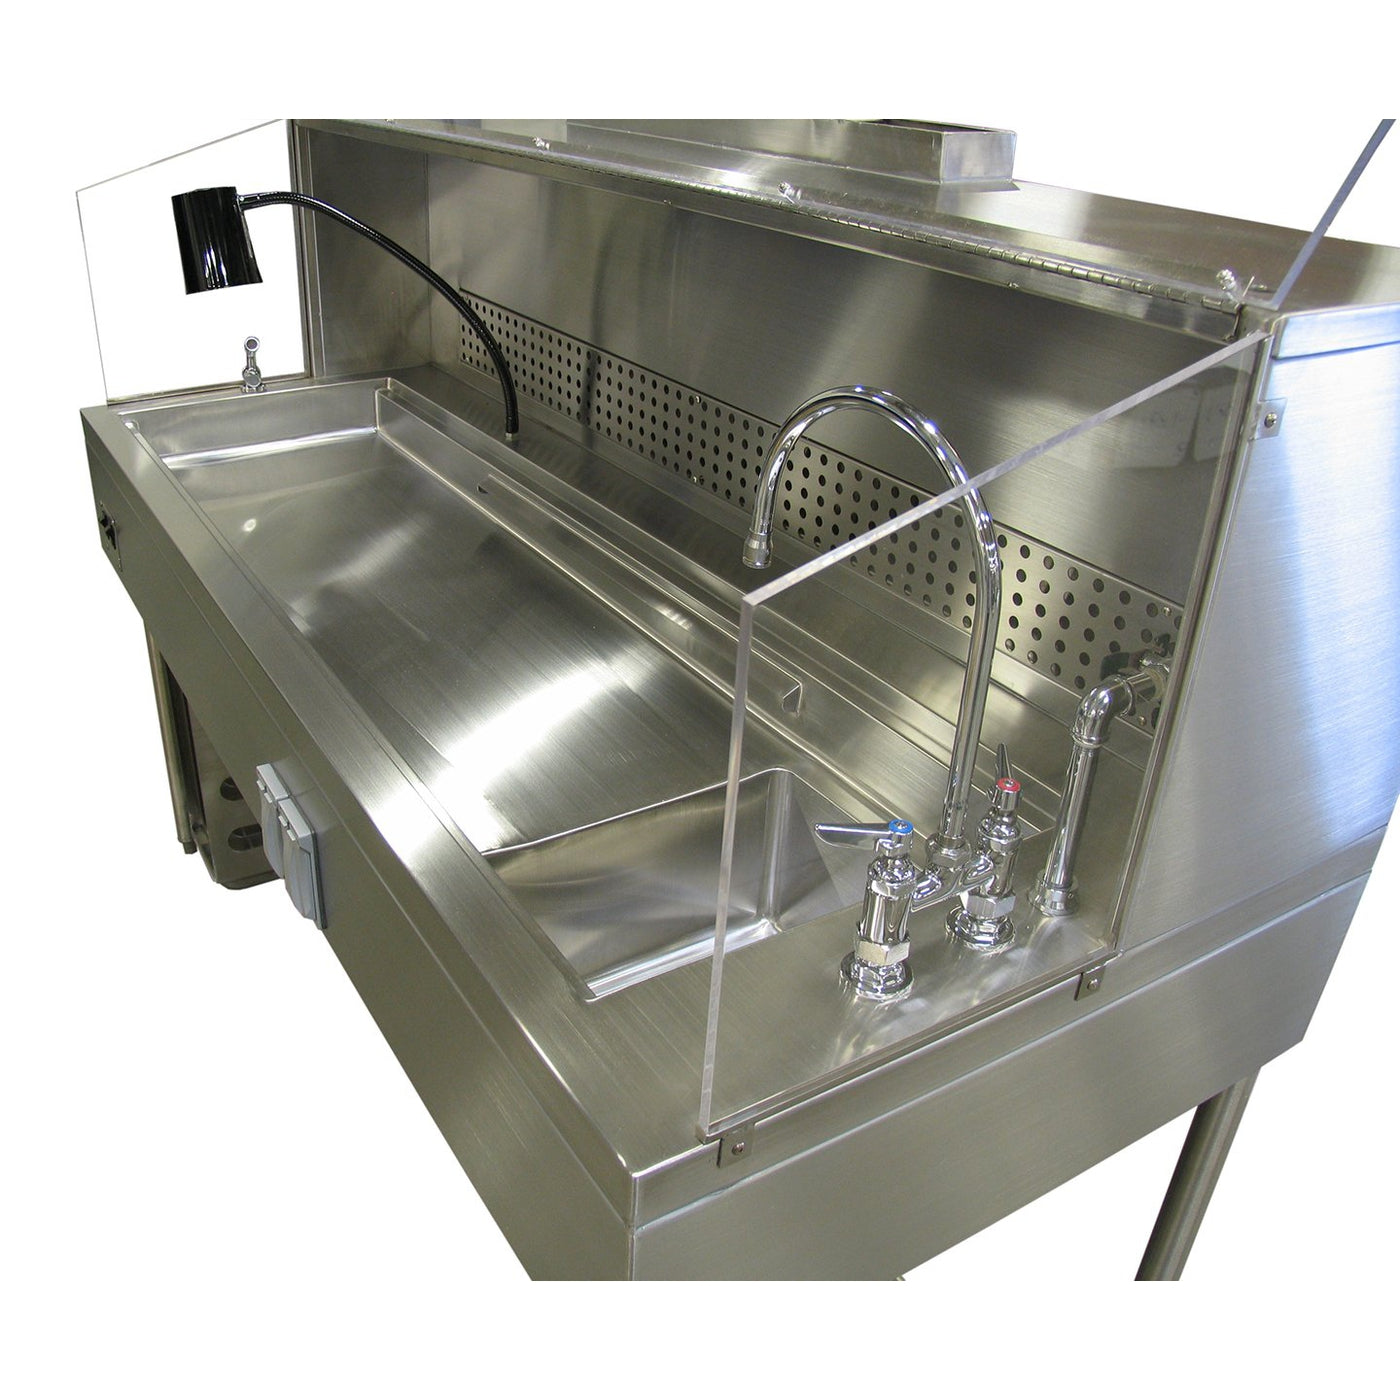 Custom Semi-Enclosed Ventilated Hood Dissection Table-Custom Product-Mortech Manufacturing Company Inc. Quality Stainless Steel Autopsy, Morgue, Funeral Home, Necropsy, Veterinary / Anatomy, Dissection Equipment and Accessories